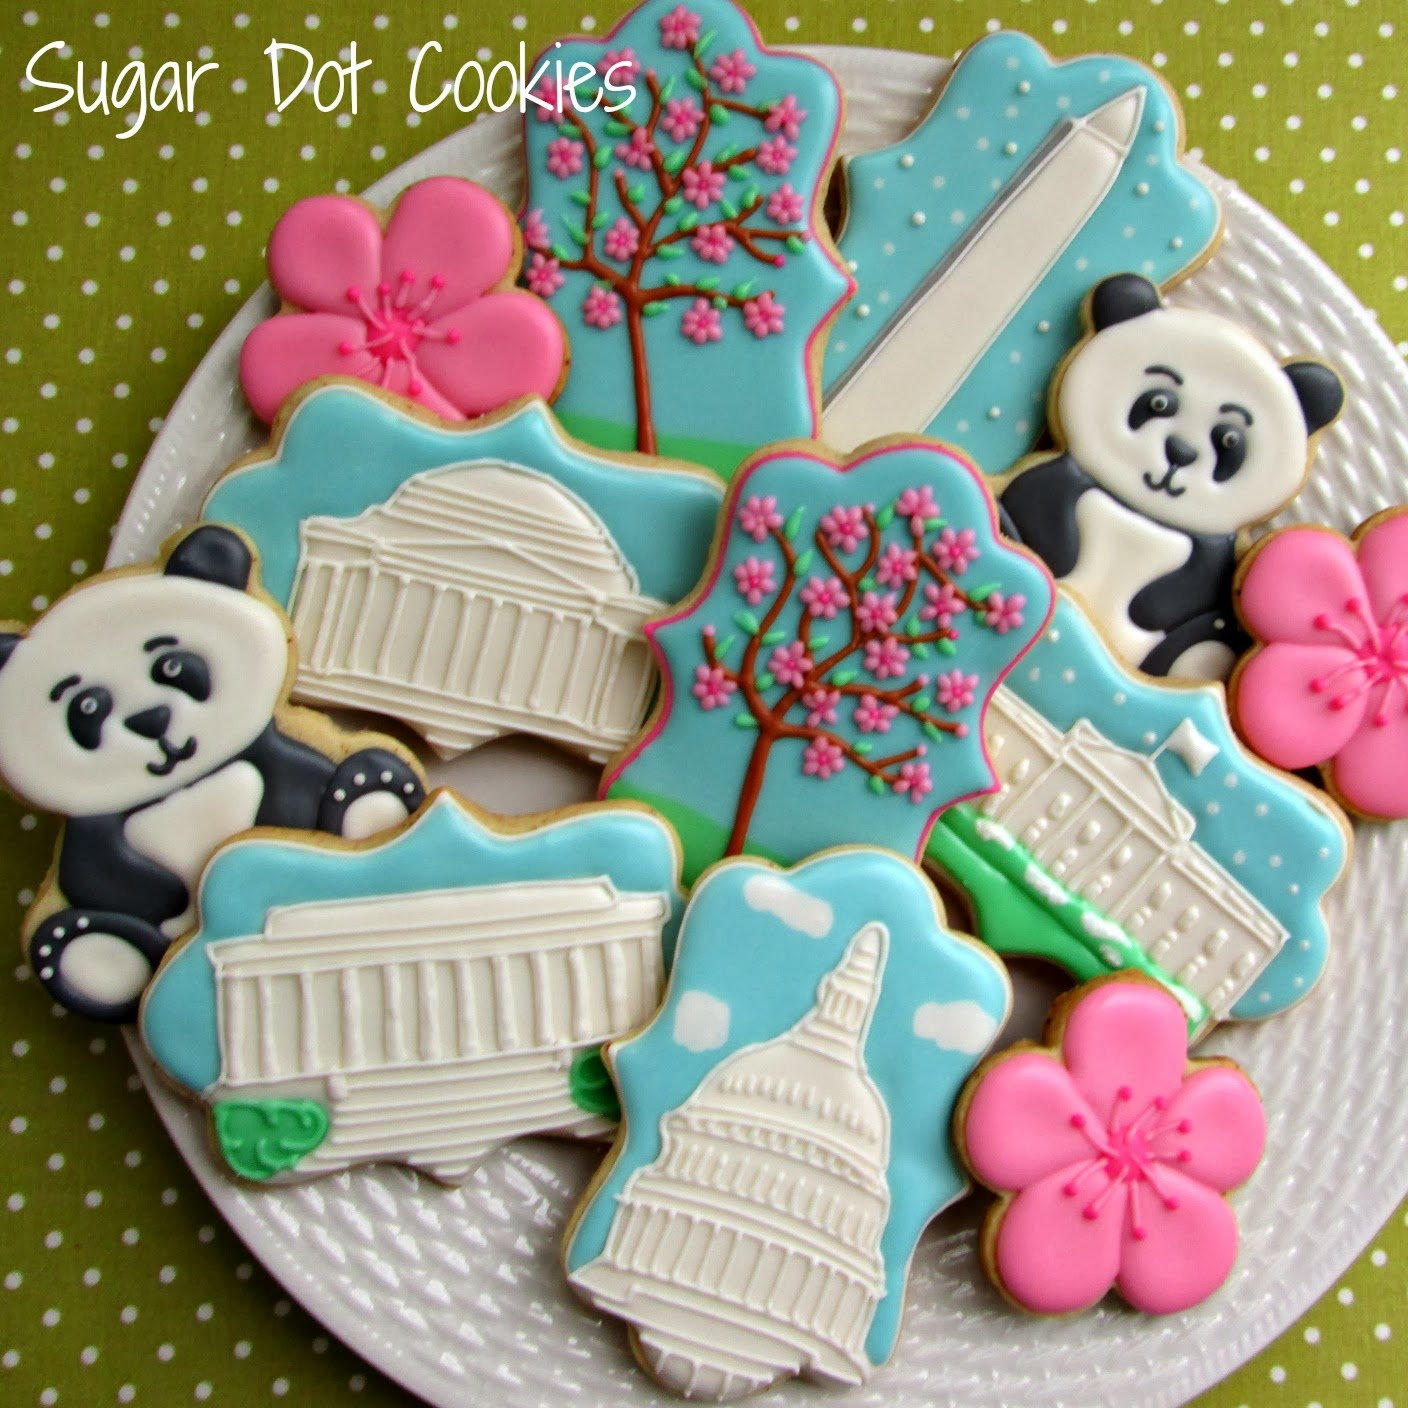 Baseball Themed Baby Shower Decorated Sugar Cookies It's